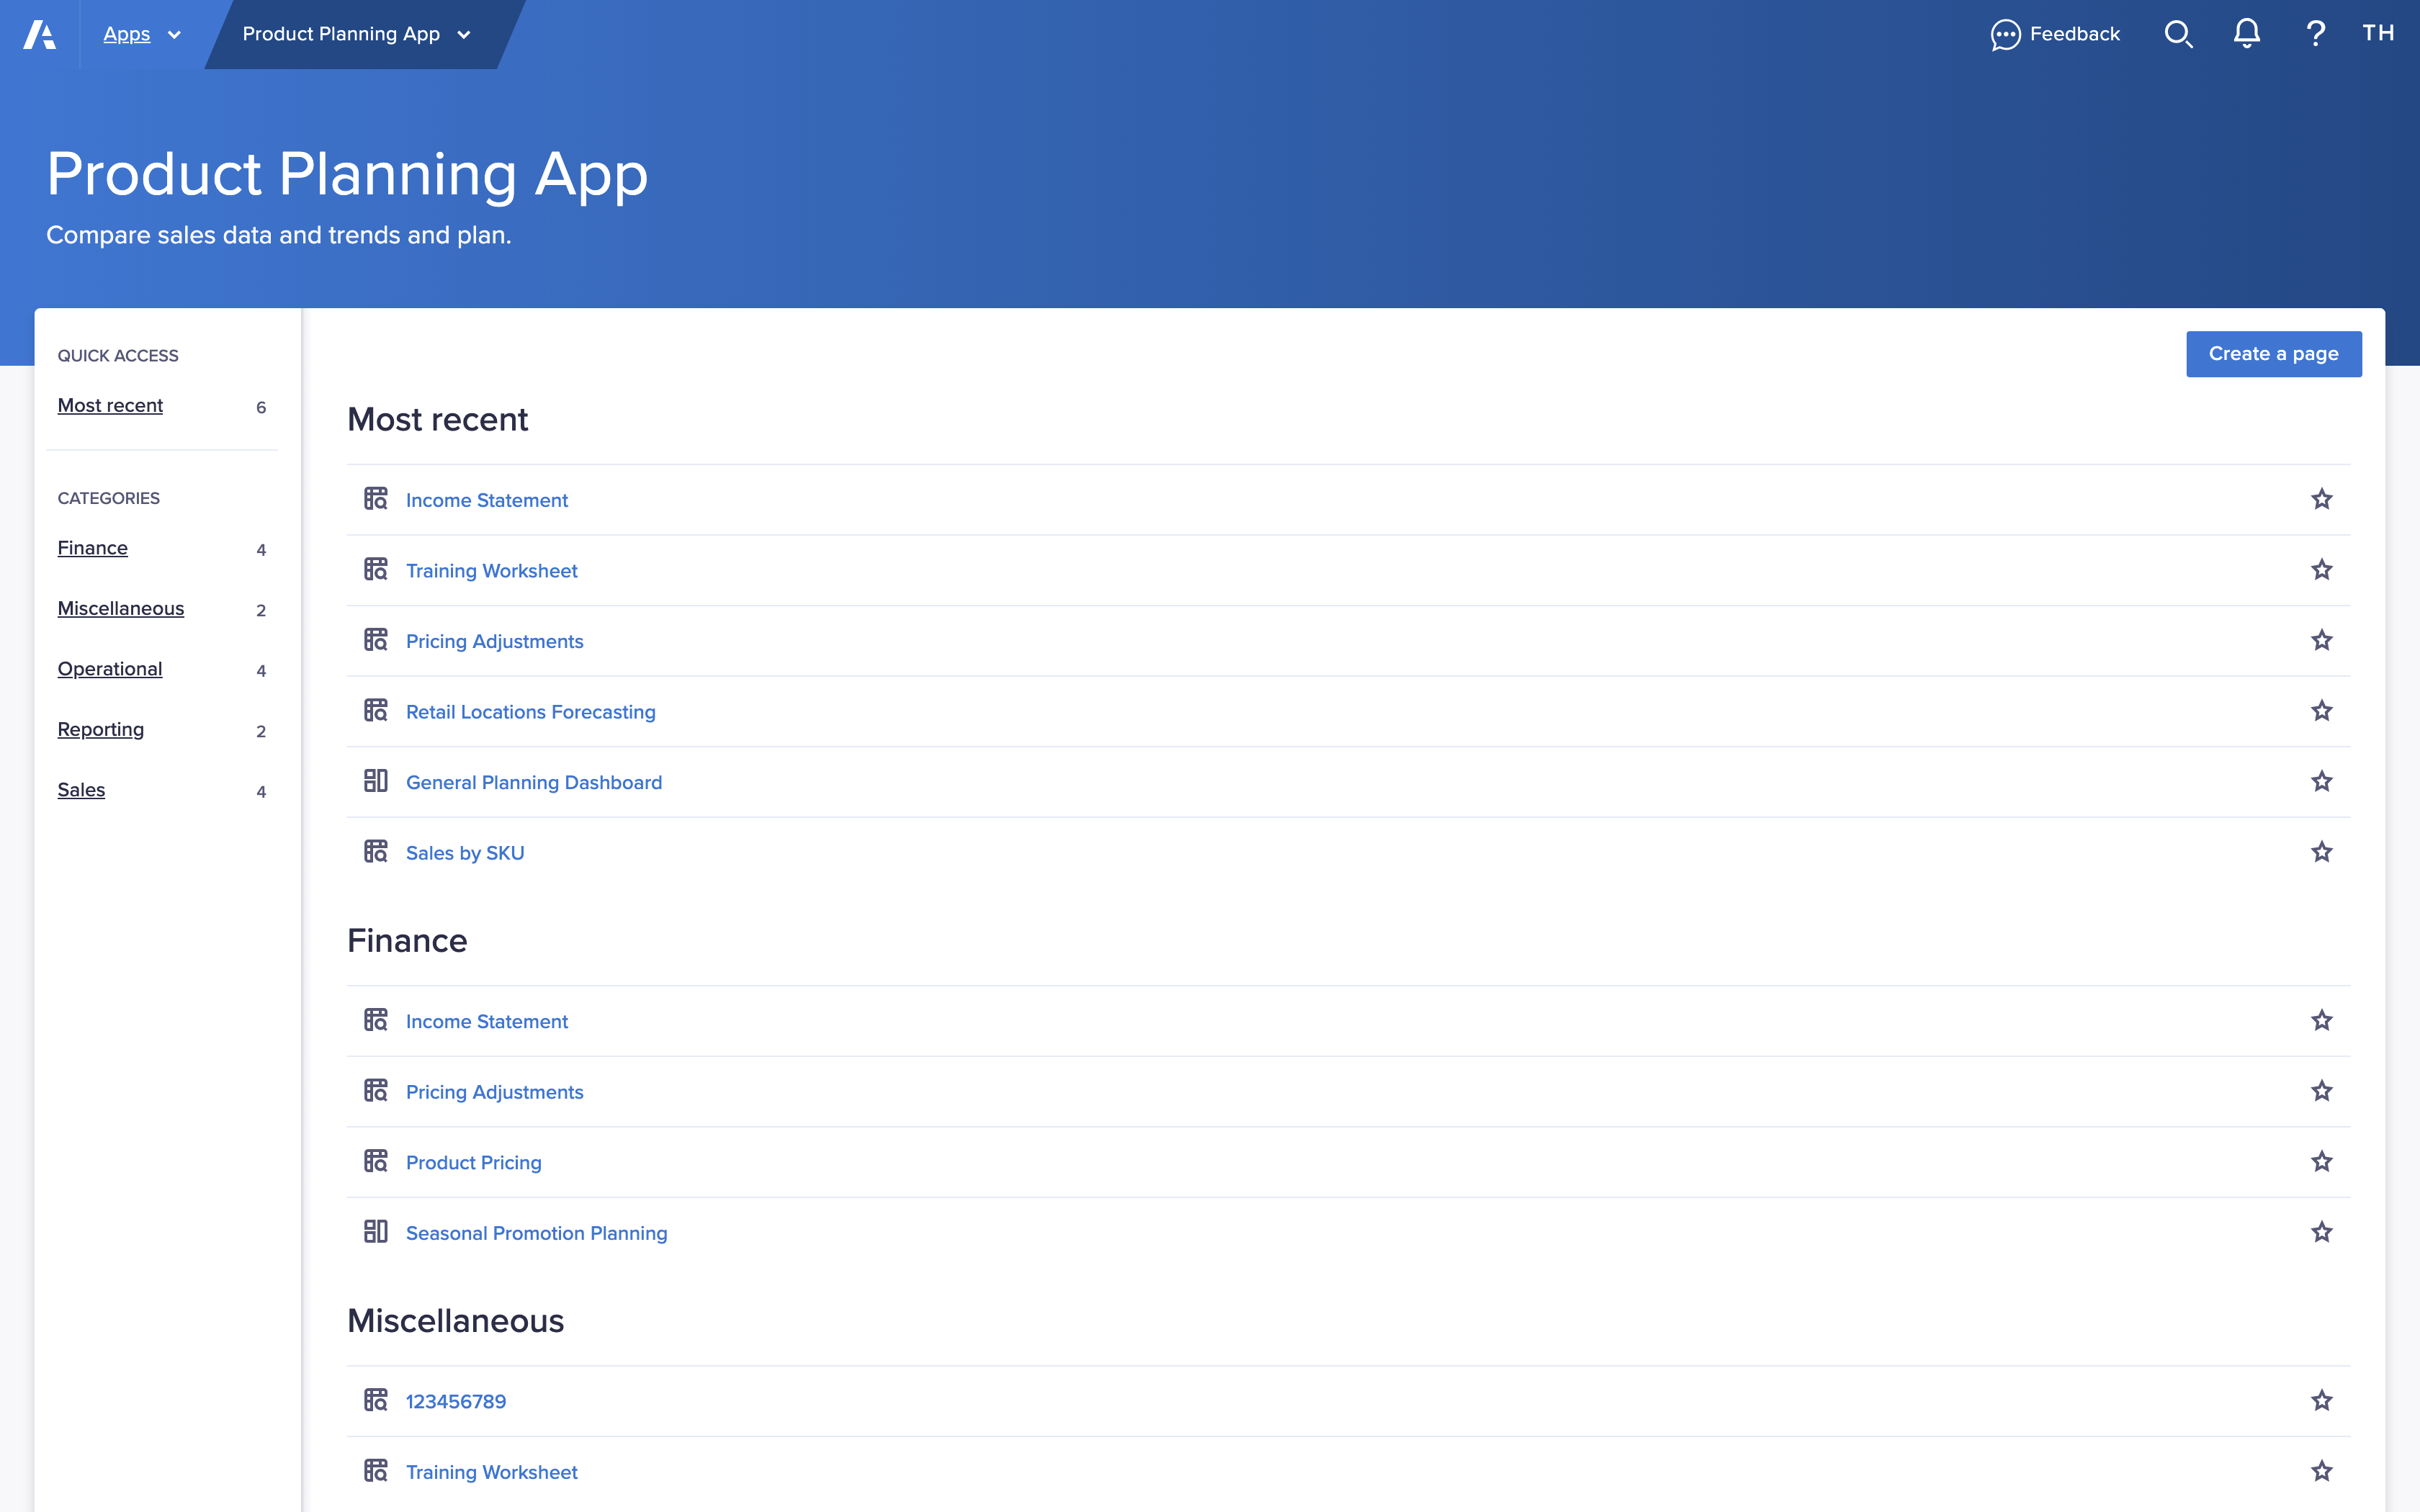 An app with pages categorized into Finance, Miscellaneous, Operational, Reporting, and Sales.